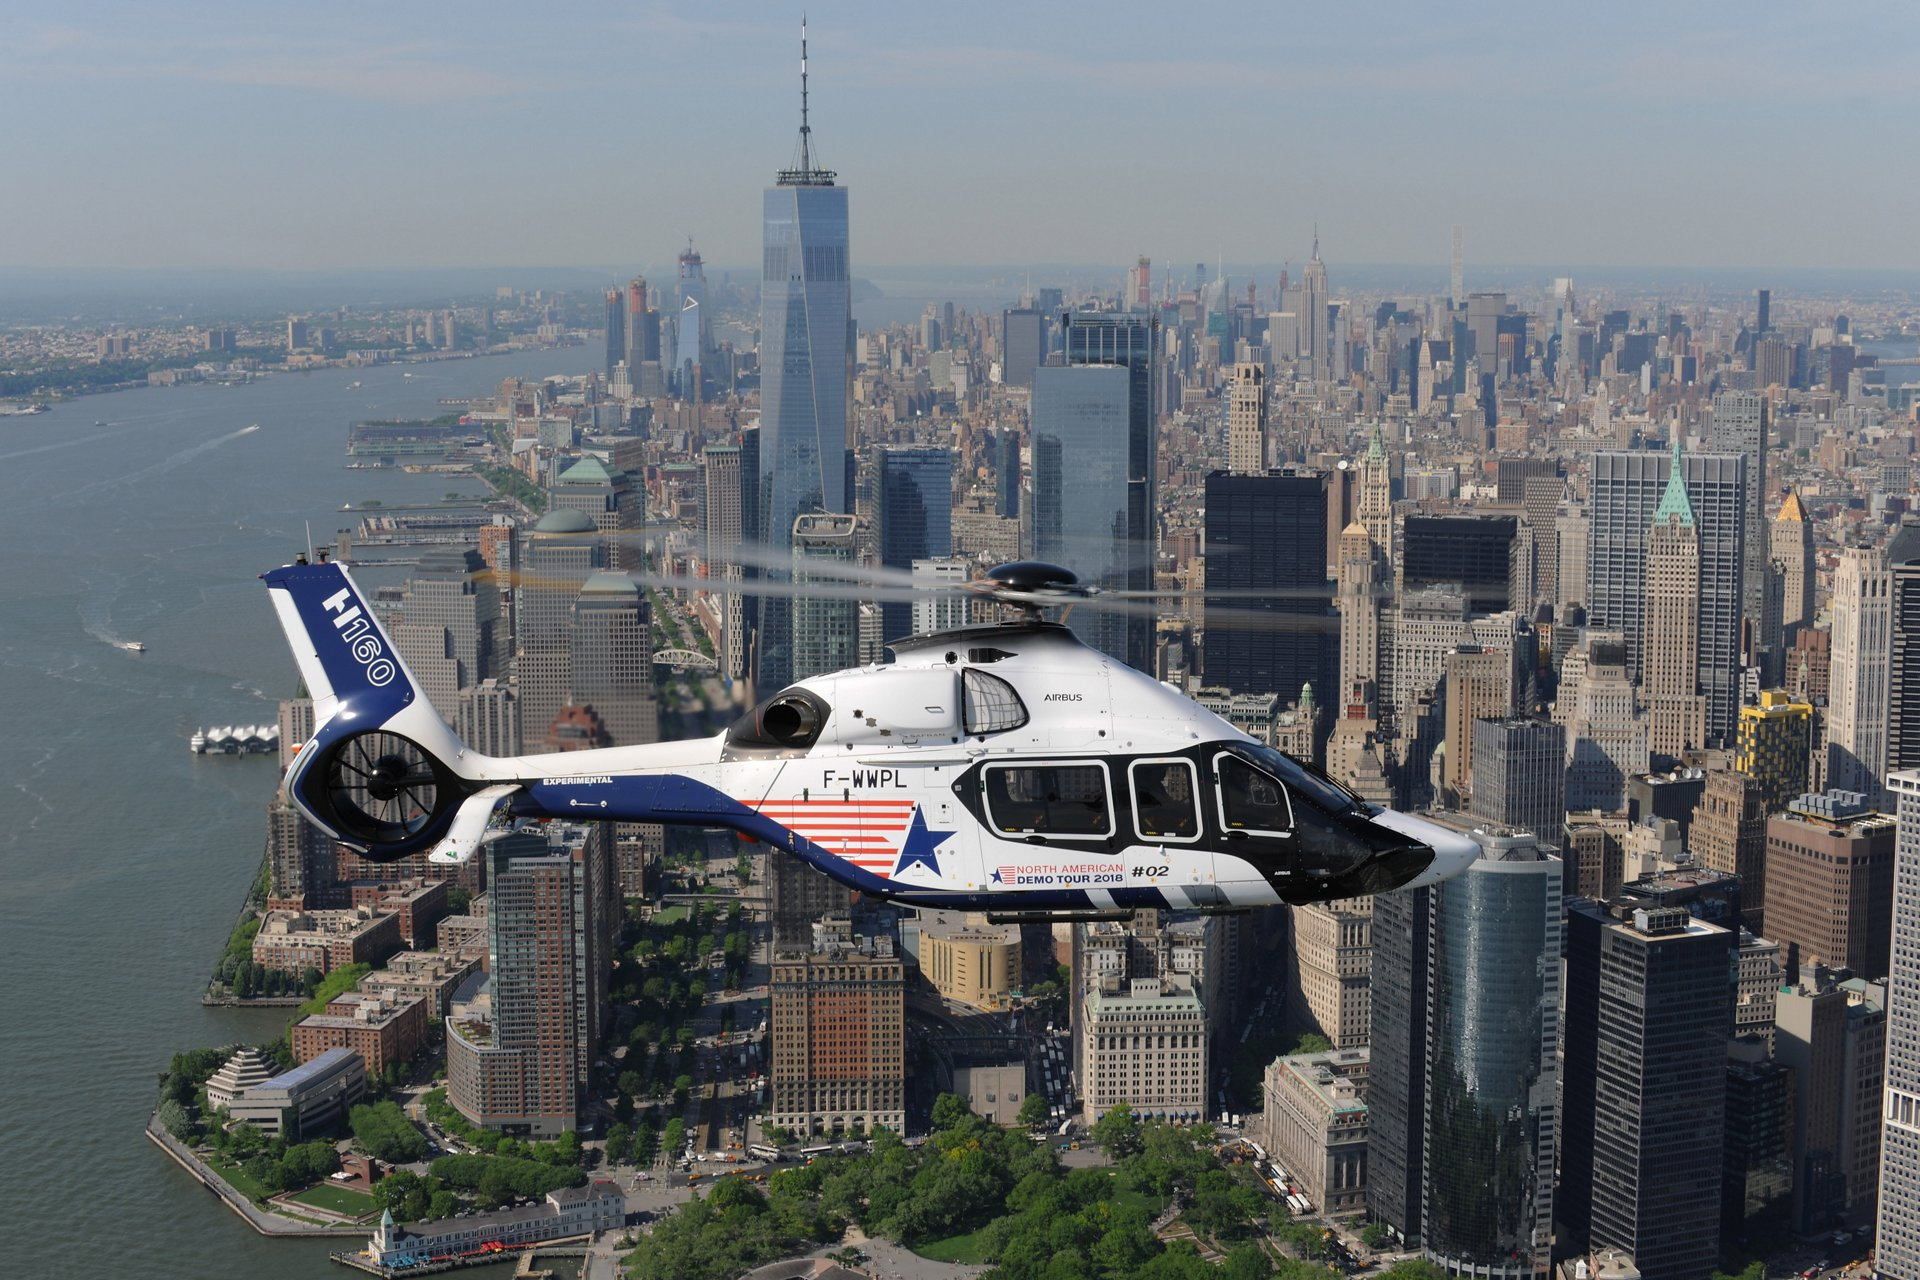 H160 Over New York